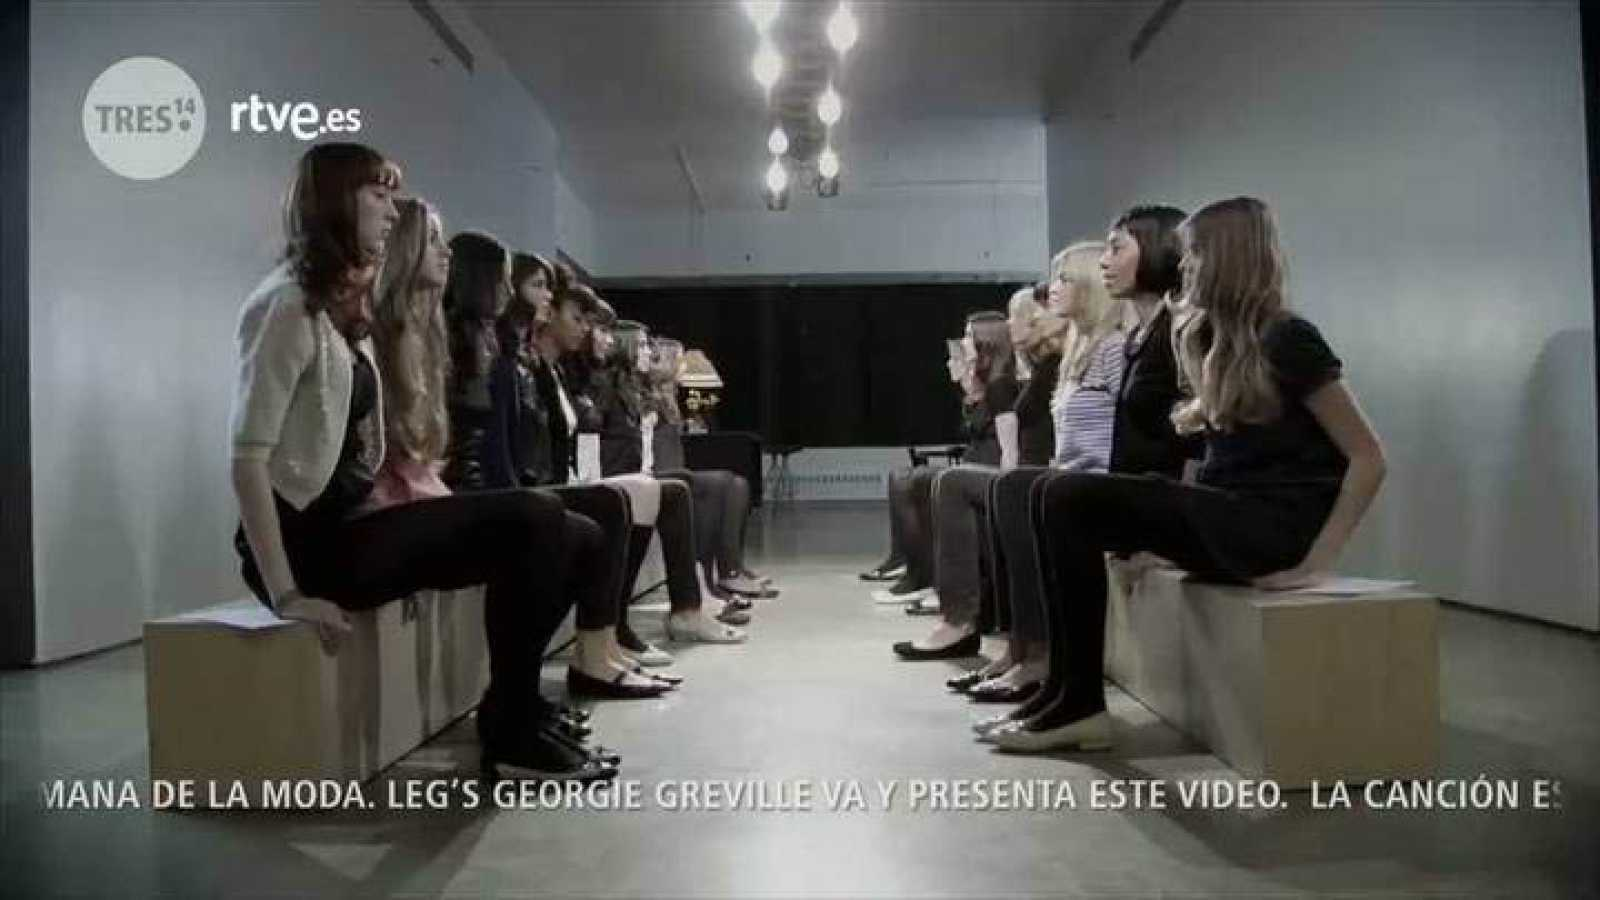 "Tres14 - Videoclip ""I wanna be your dog"" por Leg's Georgie Greville"